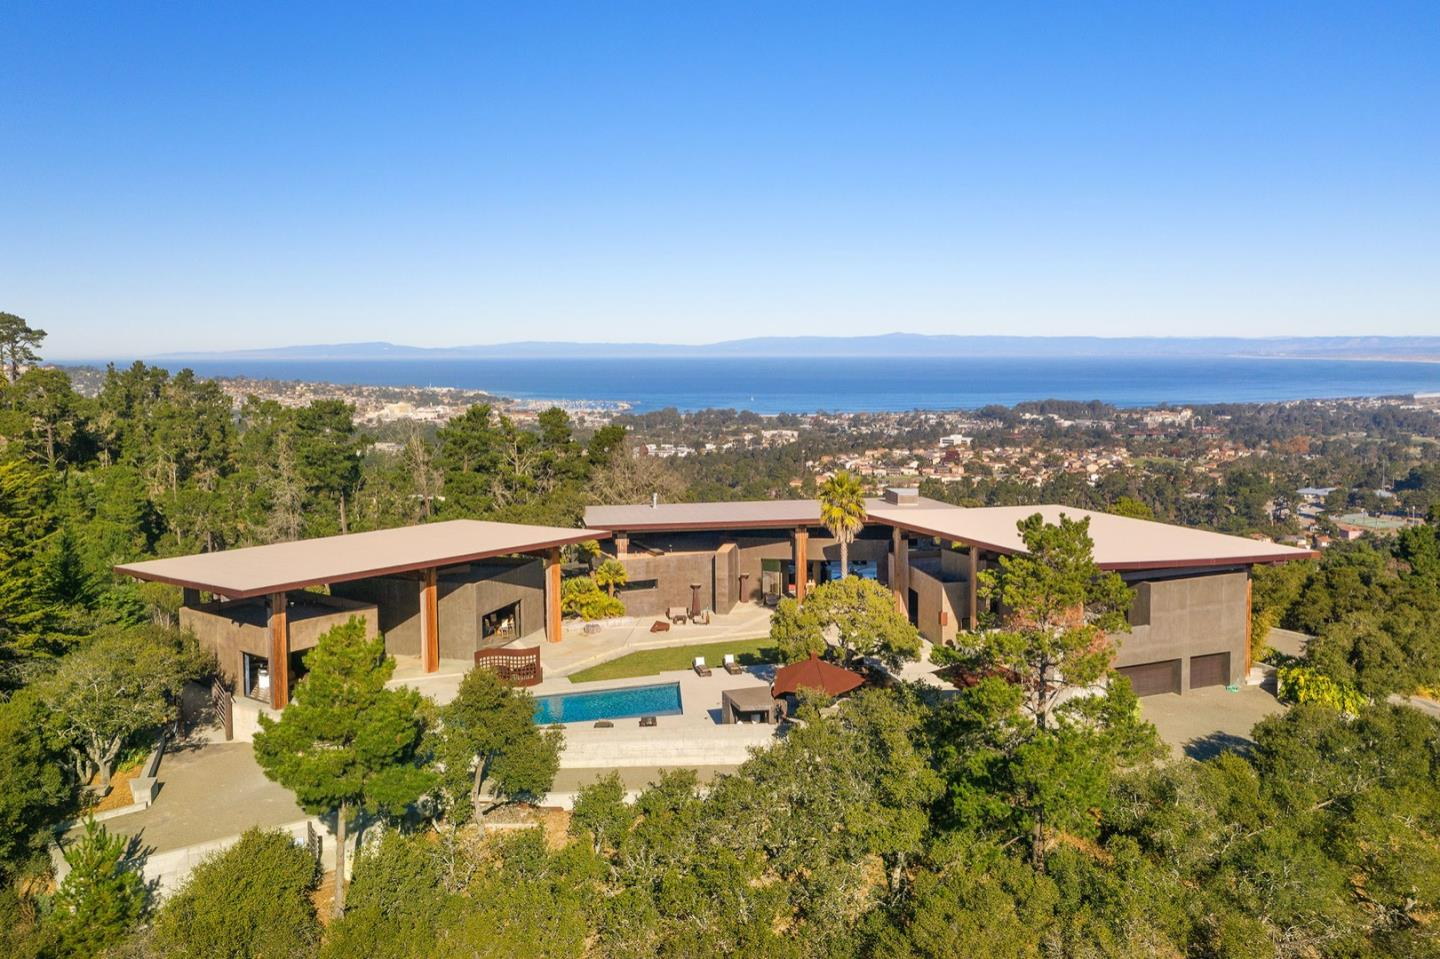 This architecturally stunning modern Ron Mann masterpiece is perfectly placed high on Gentry Hill. The 5-acre property, sitting in the sunshine, takes in panoramic views of the entire Monterey Bay across to Santa Cruz, as well the lush forest horizon of Jacks Peak. The living areas are filled with exquisite finishes and details of skilled artisans. It's your own private luxury wellness resort and spa. Three giant rectangular corten steel roofs appear to float above the concrete buildings, resting on the solid 26 ft tall old growth Douglas Fir columns. The volume of the 18 ft ceilings is magnified by 12 ft glass panels that disappear into the walls, designed for an incomparable indoor/outdoor lifestyle. Every building opens onto the 1/2 acre courtyard; the perfect locale for enjoying the coastal environment and fresh air. A unique estate that is just minutes to all of the recreation and amenities of Carmel, Pebble Beach and the Monterey Peninsula.